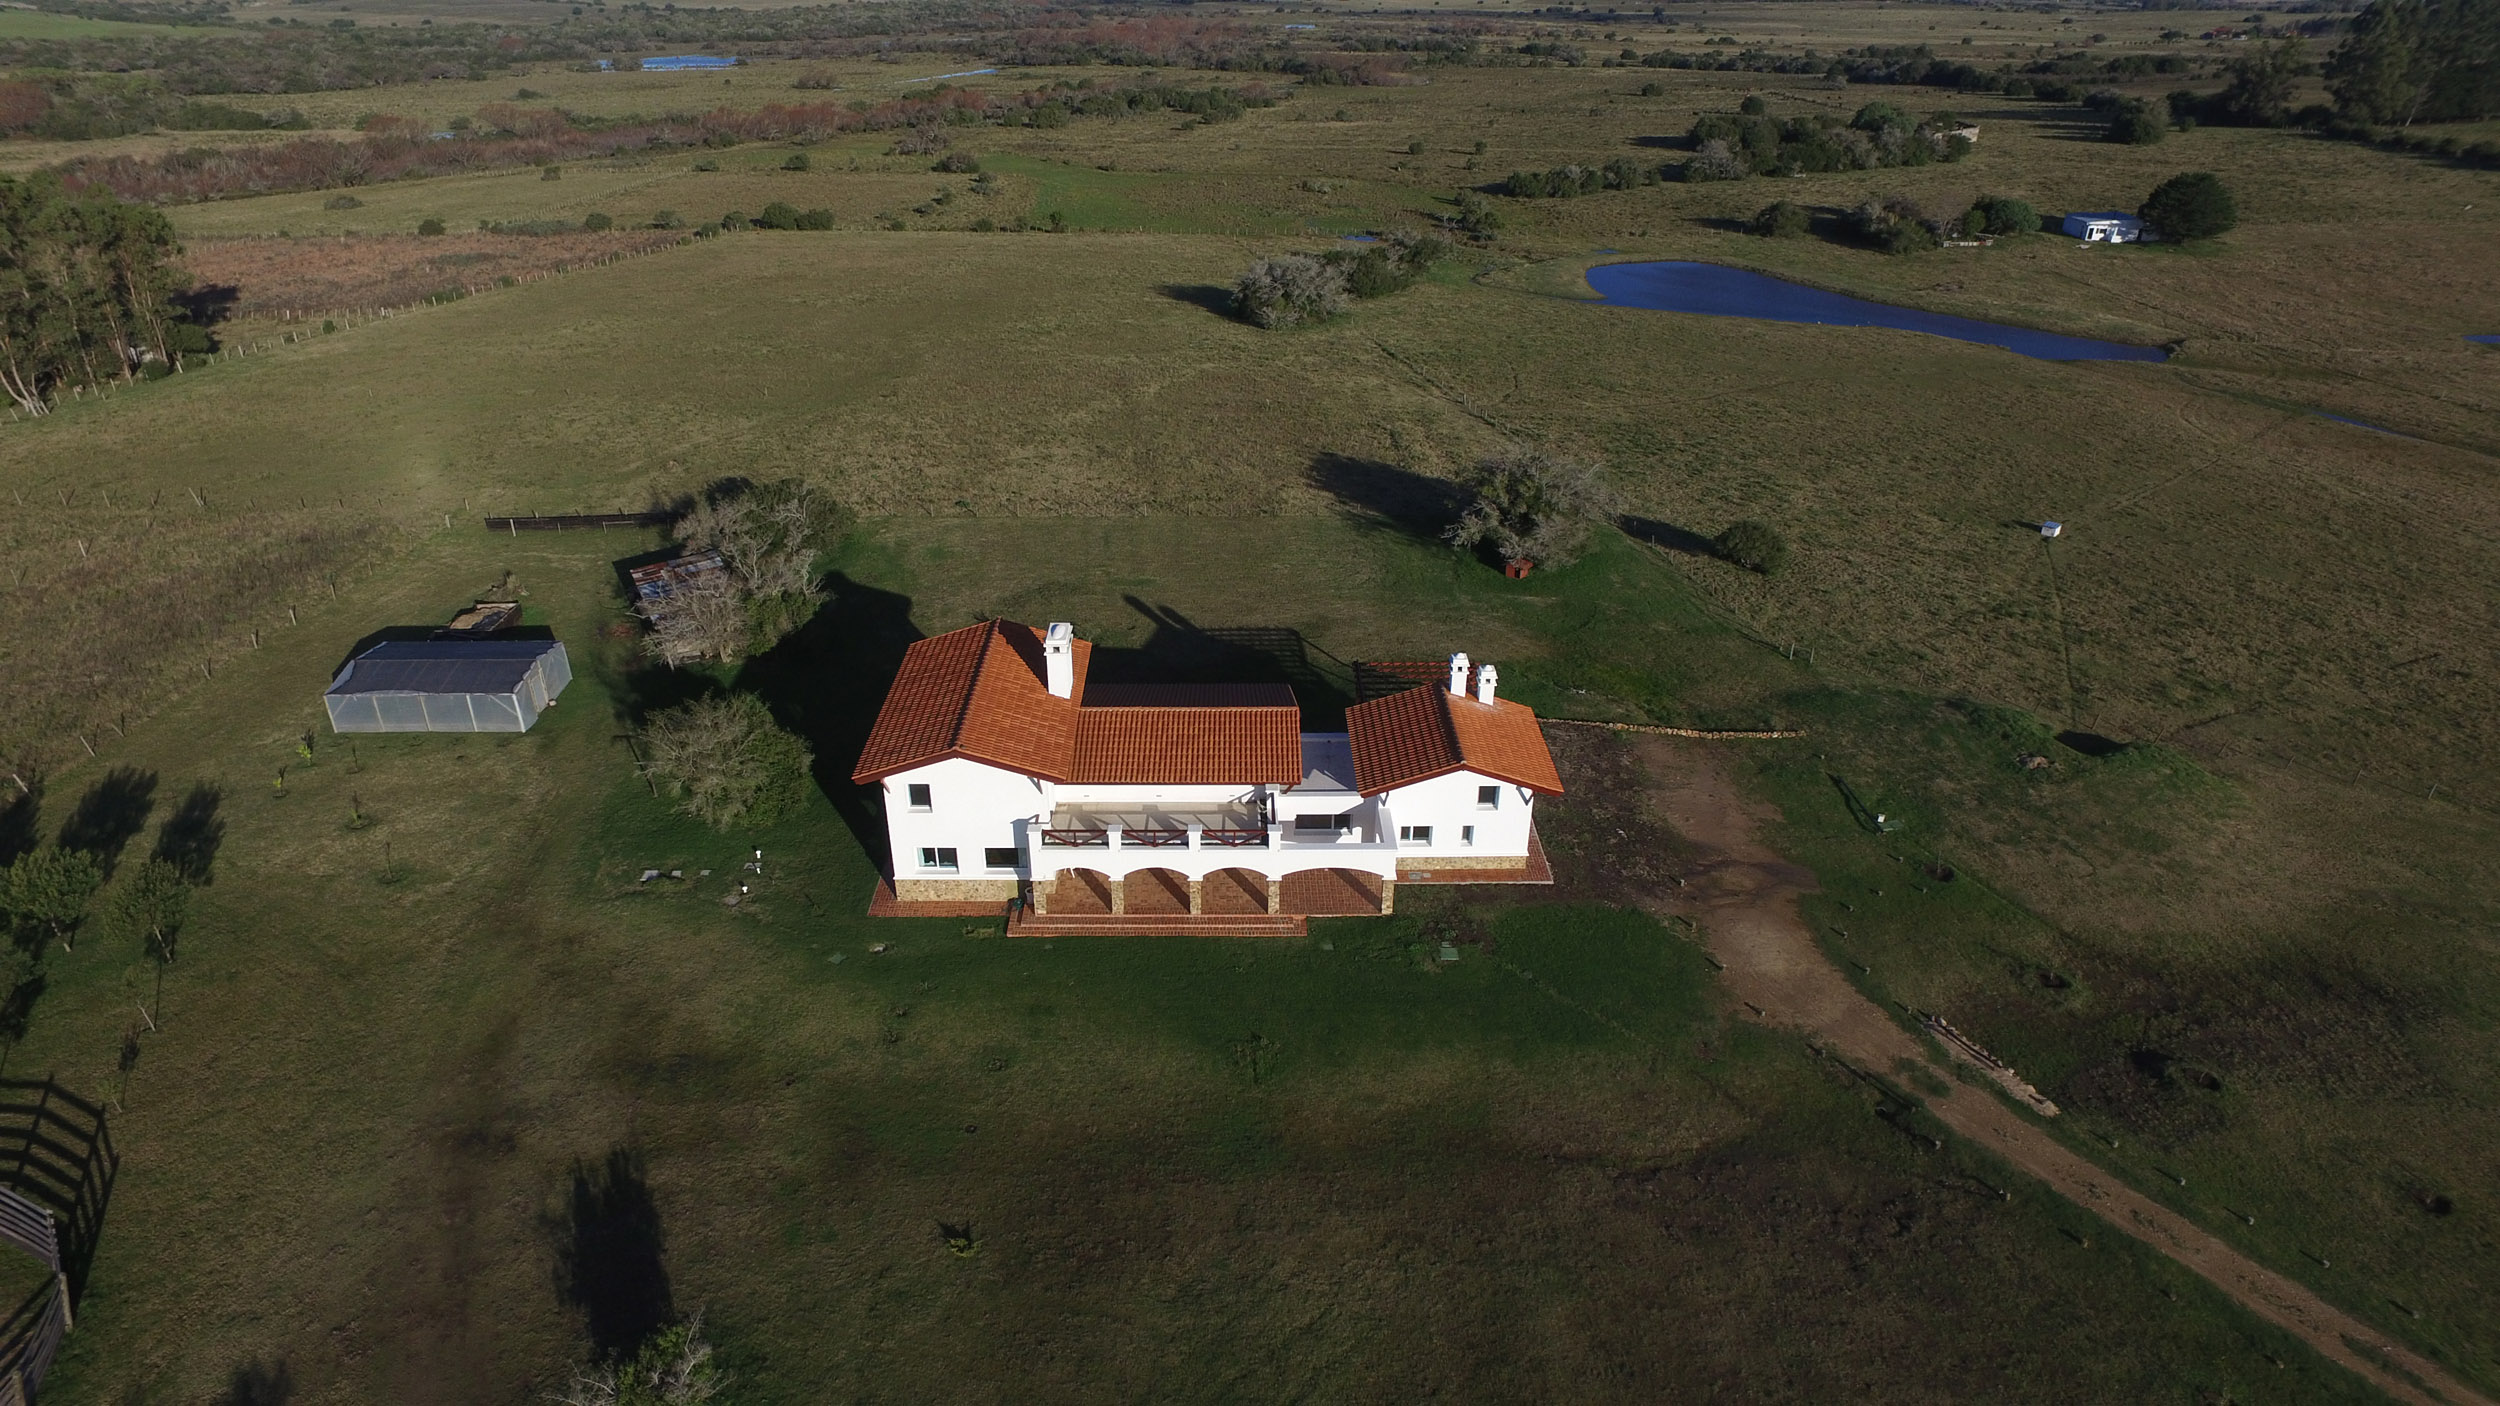 Single Family Home for sale in Ruta 12, km 25,600, Pueblo Edén, Maldonado   , Uruguay